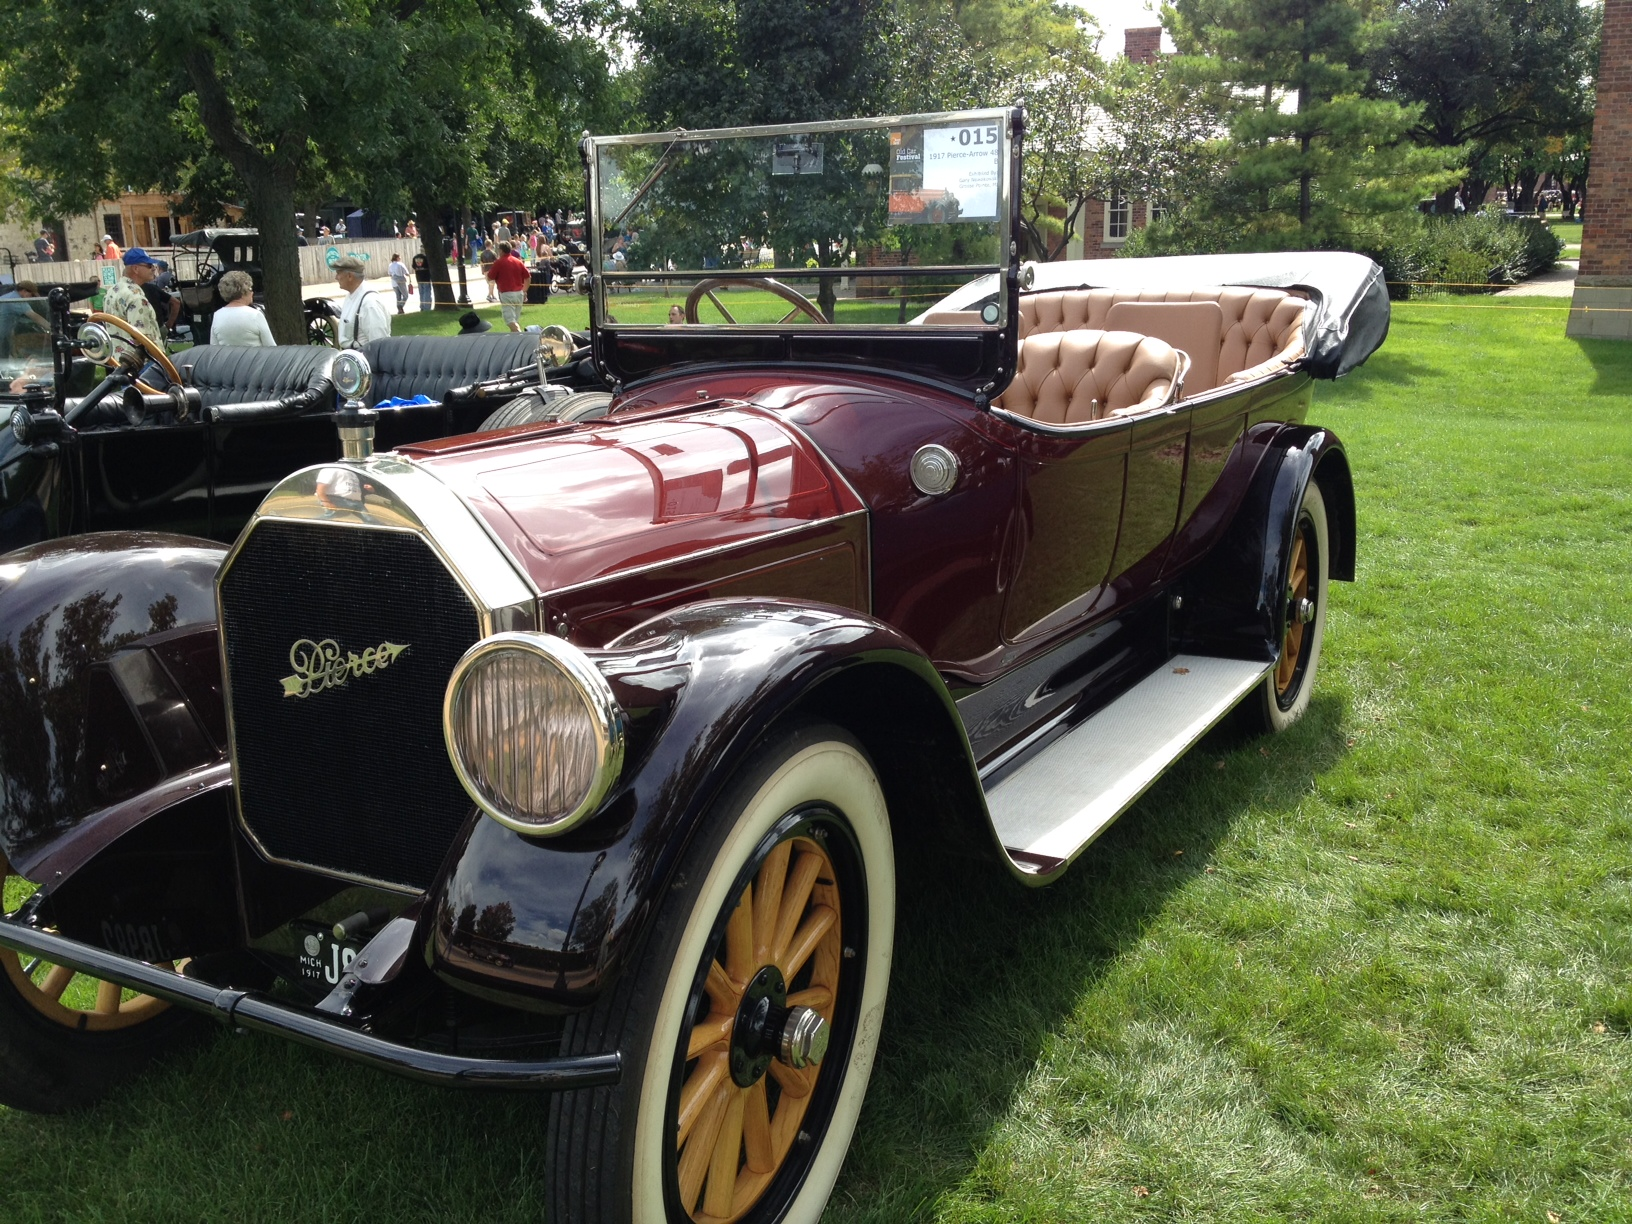 early 1900s vintage cars | The Vintage Inn